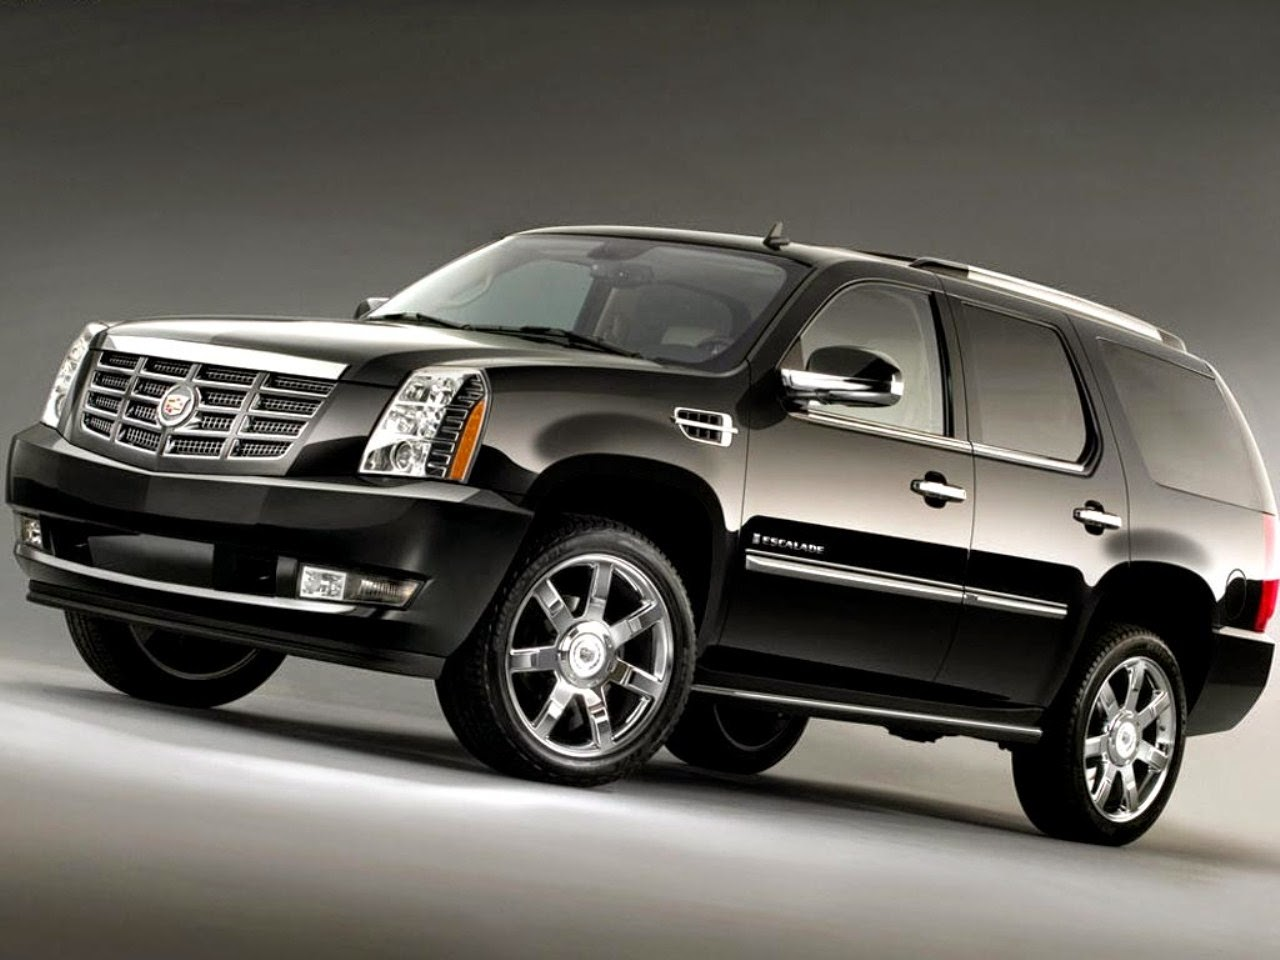 2015 cadillac escalade wallpapers car wallpaper collections gallery view. Black Bedroom Furniture Sets. Home Design Ideas